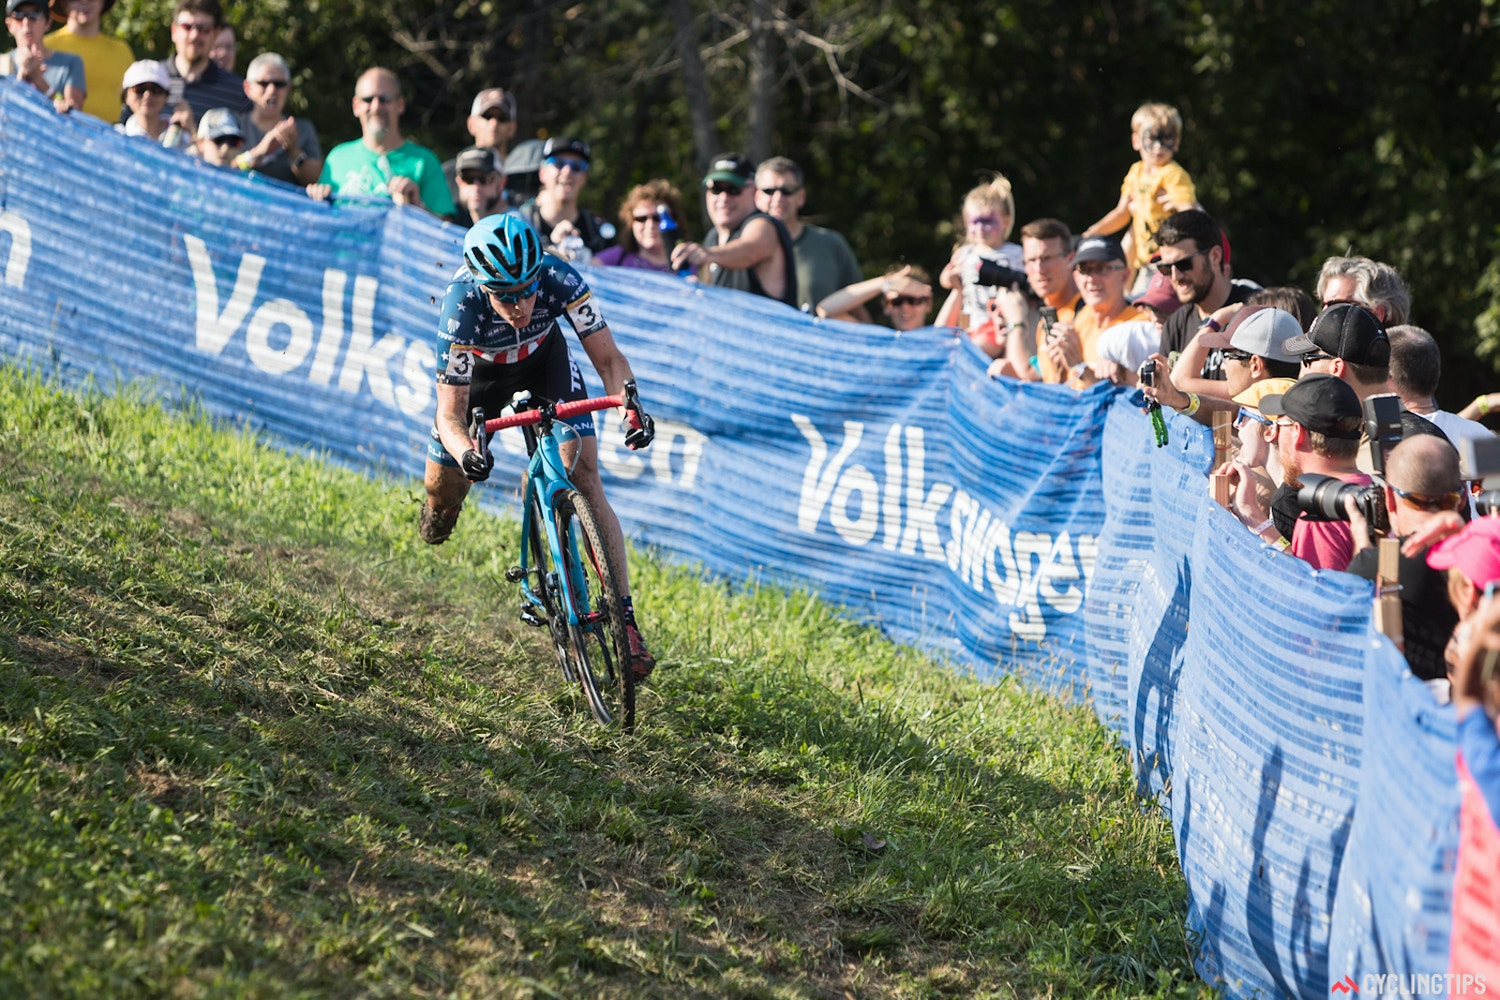 Van Aert, Compton solo to victories at inaugural Iowa City cyclocross World Cup event